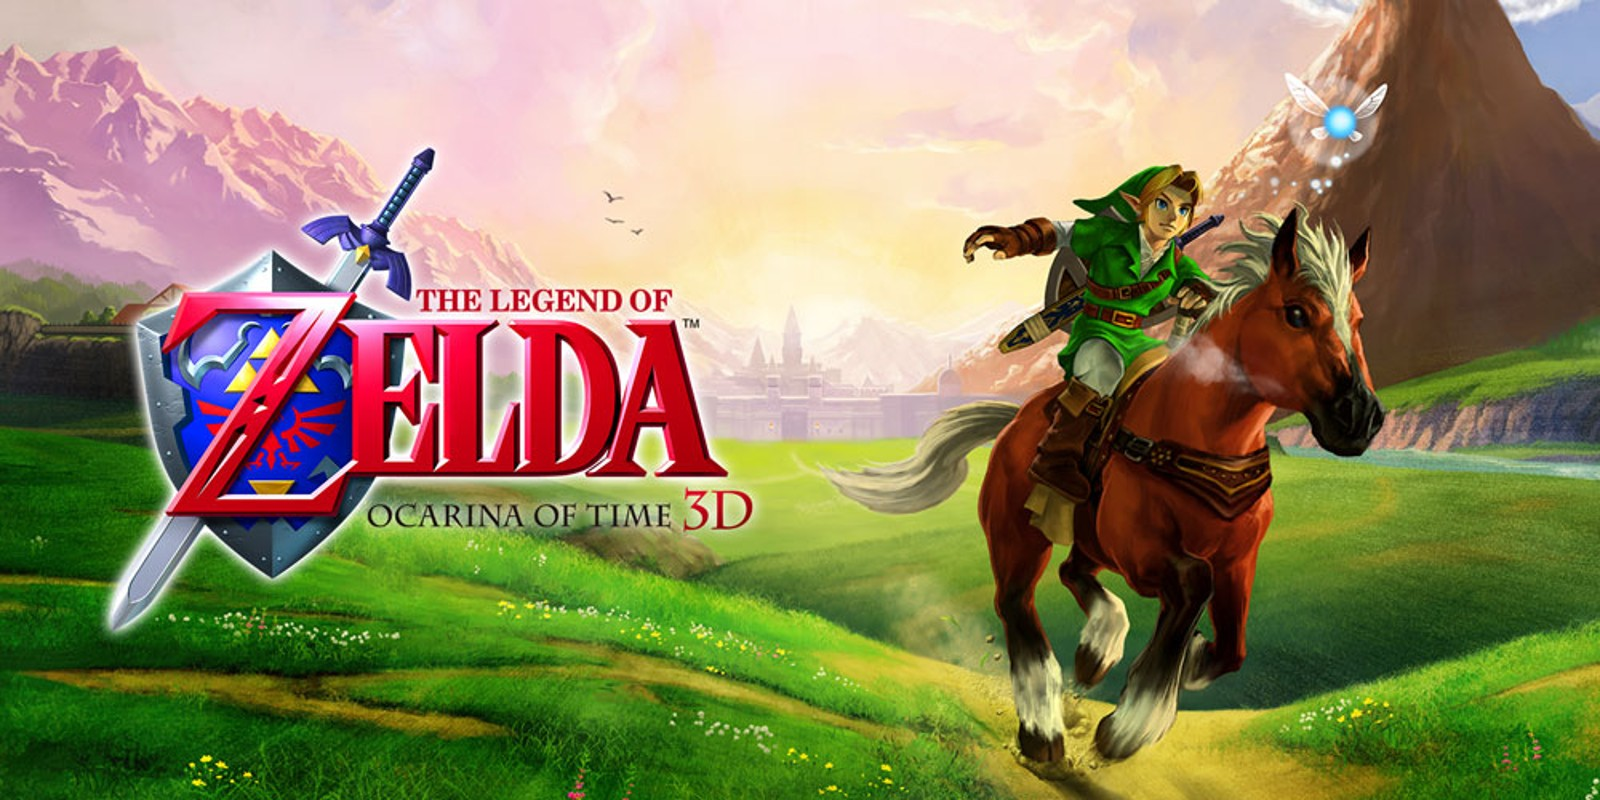 Si 3ds thelegendofzeldaocarinaoftime3d image1600w